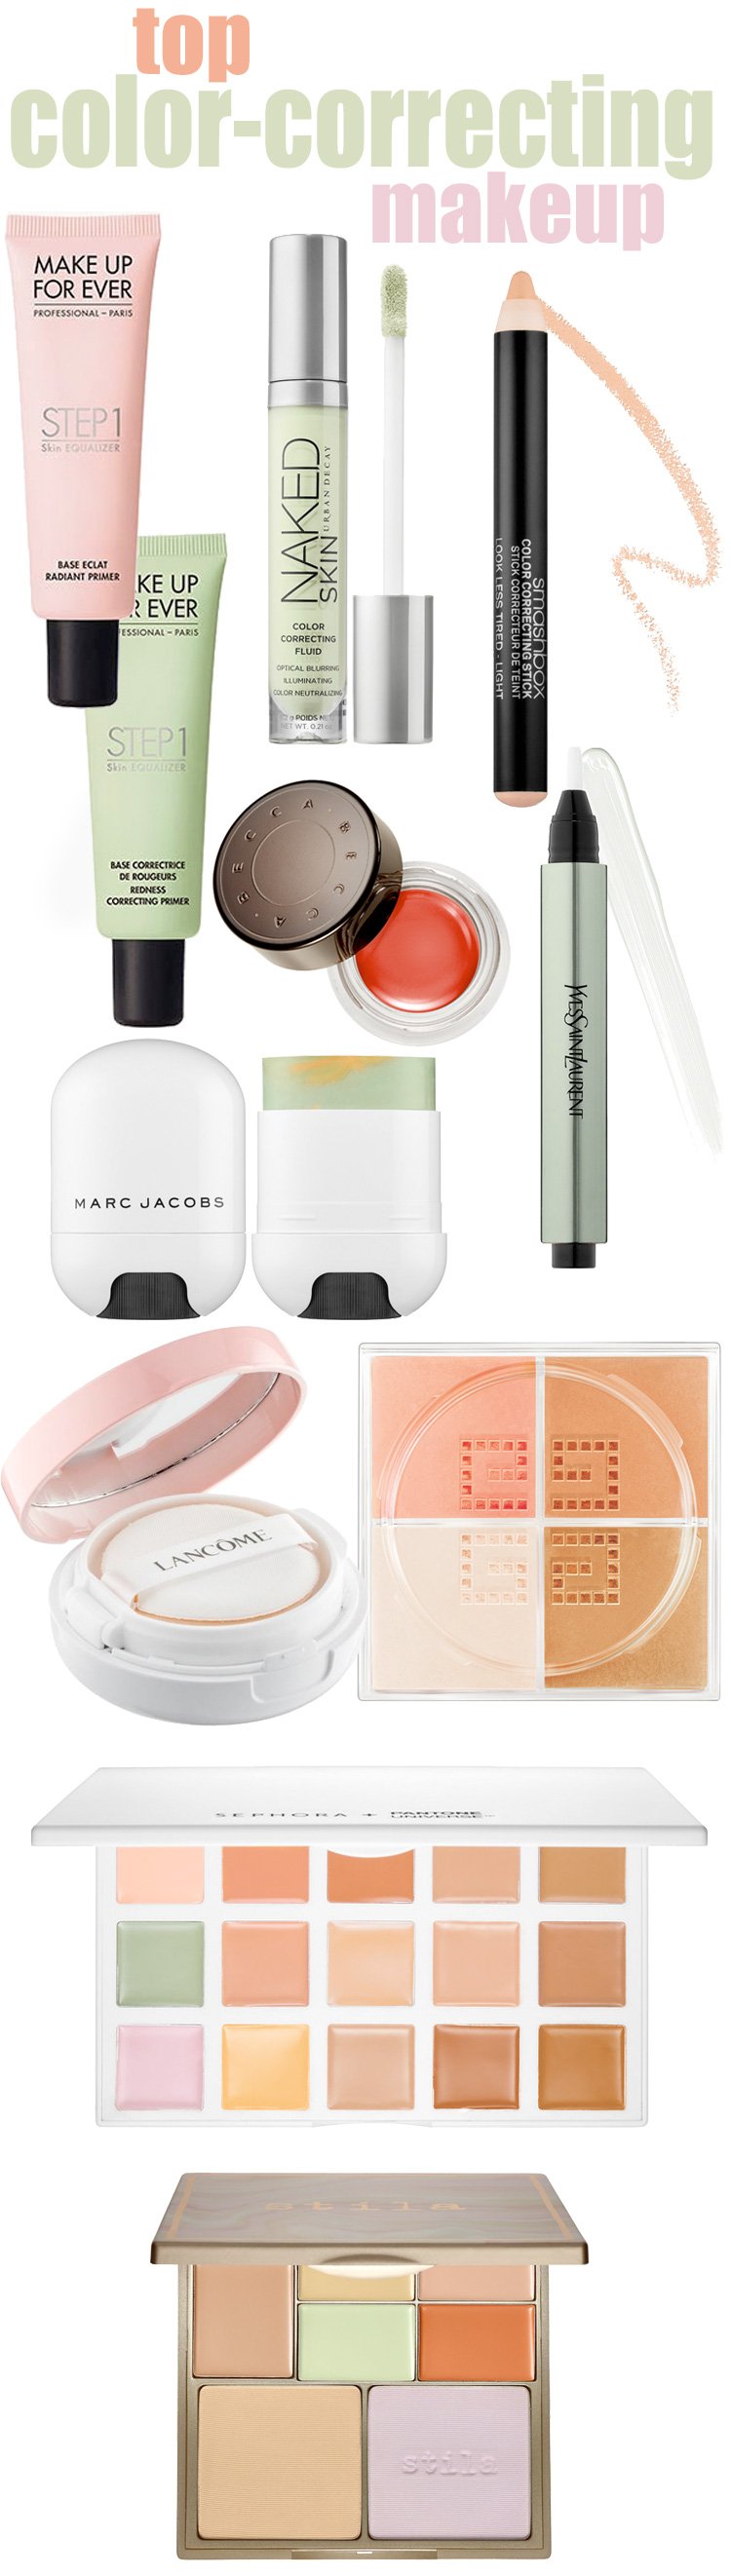 Top color-correcting makeup products to neutralize complexion concerns. If you need to hide dark circles, cancel out redness or warm up dullness in your skin, you need a color-corrector!